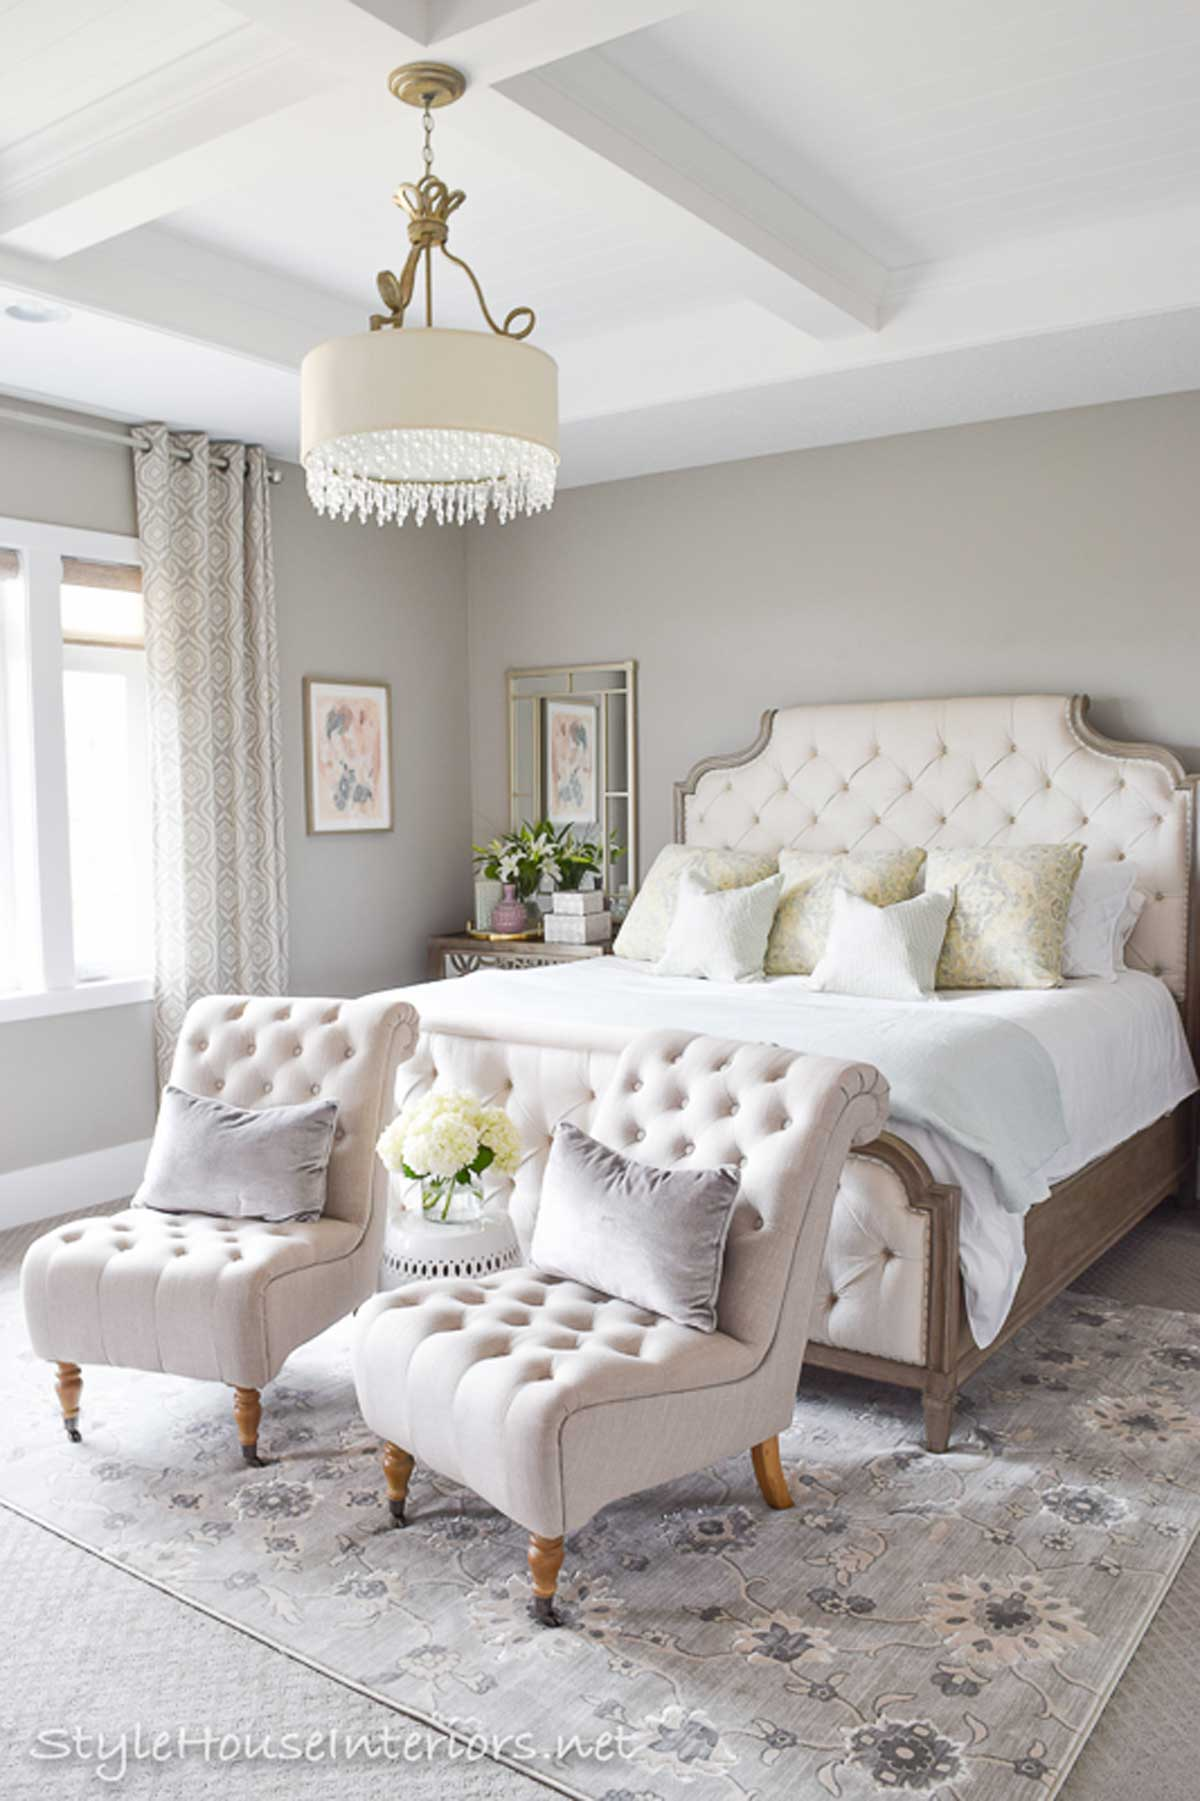 Luxe style - A style guide with expert knowledge on ... on Room Decor Pictures  id=59136